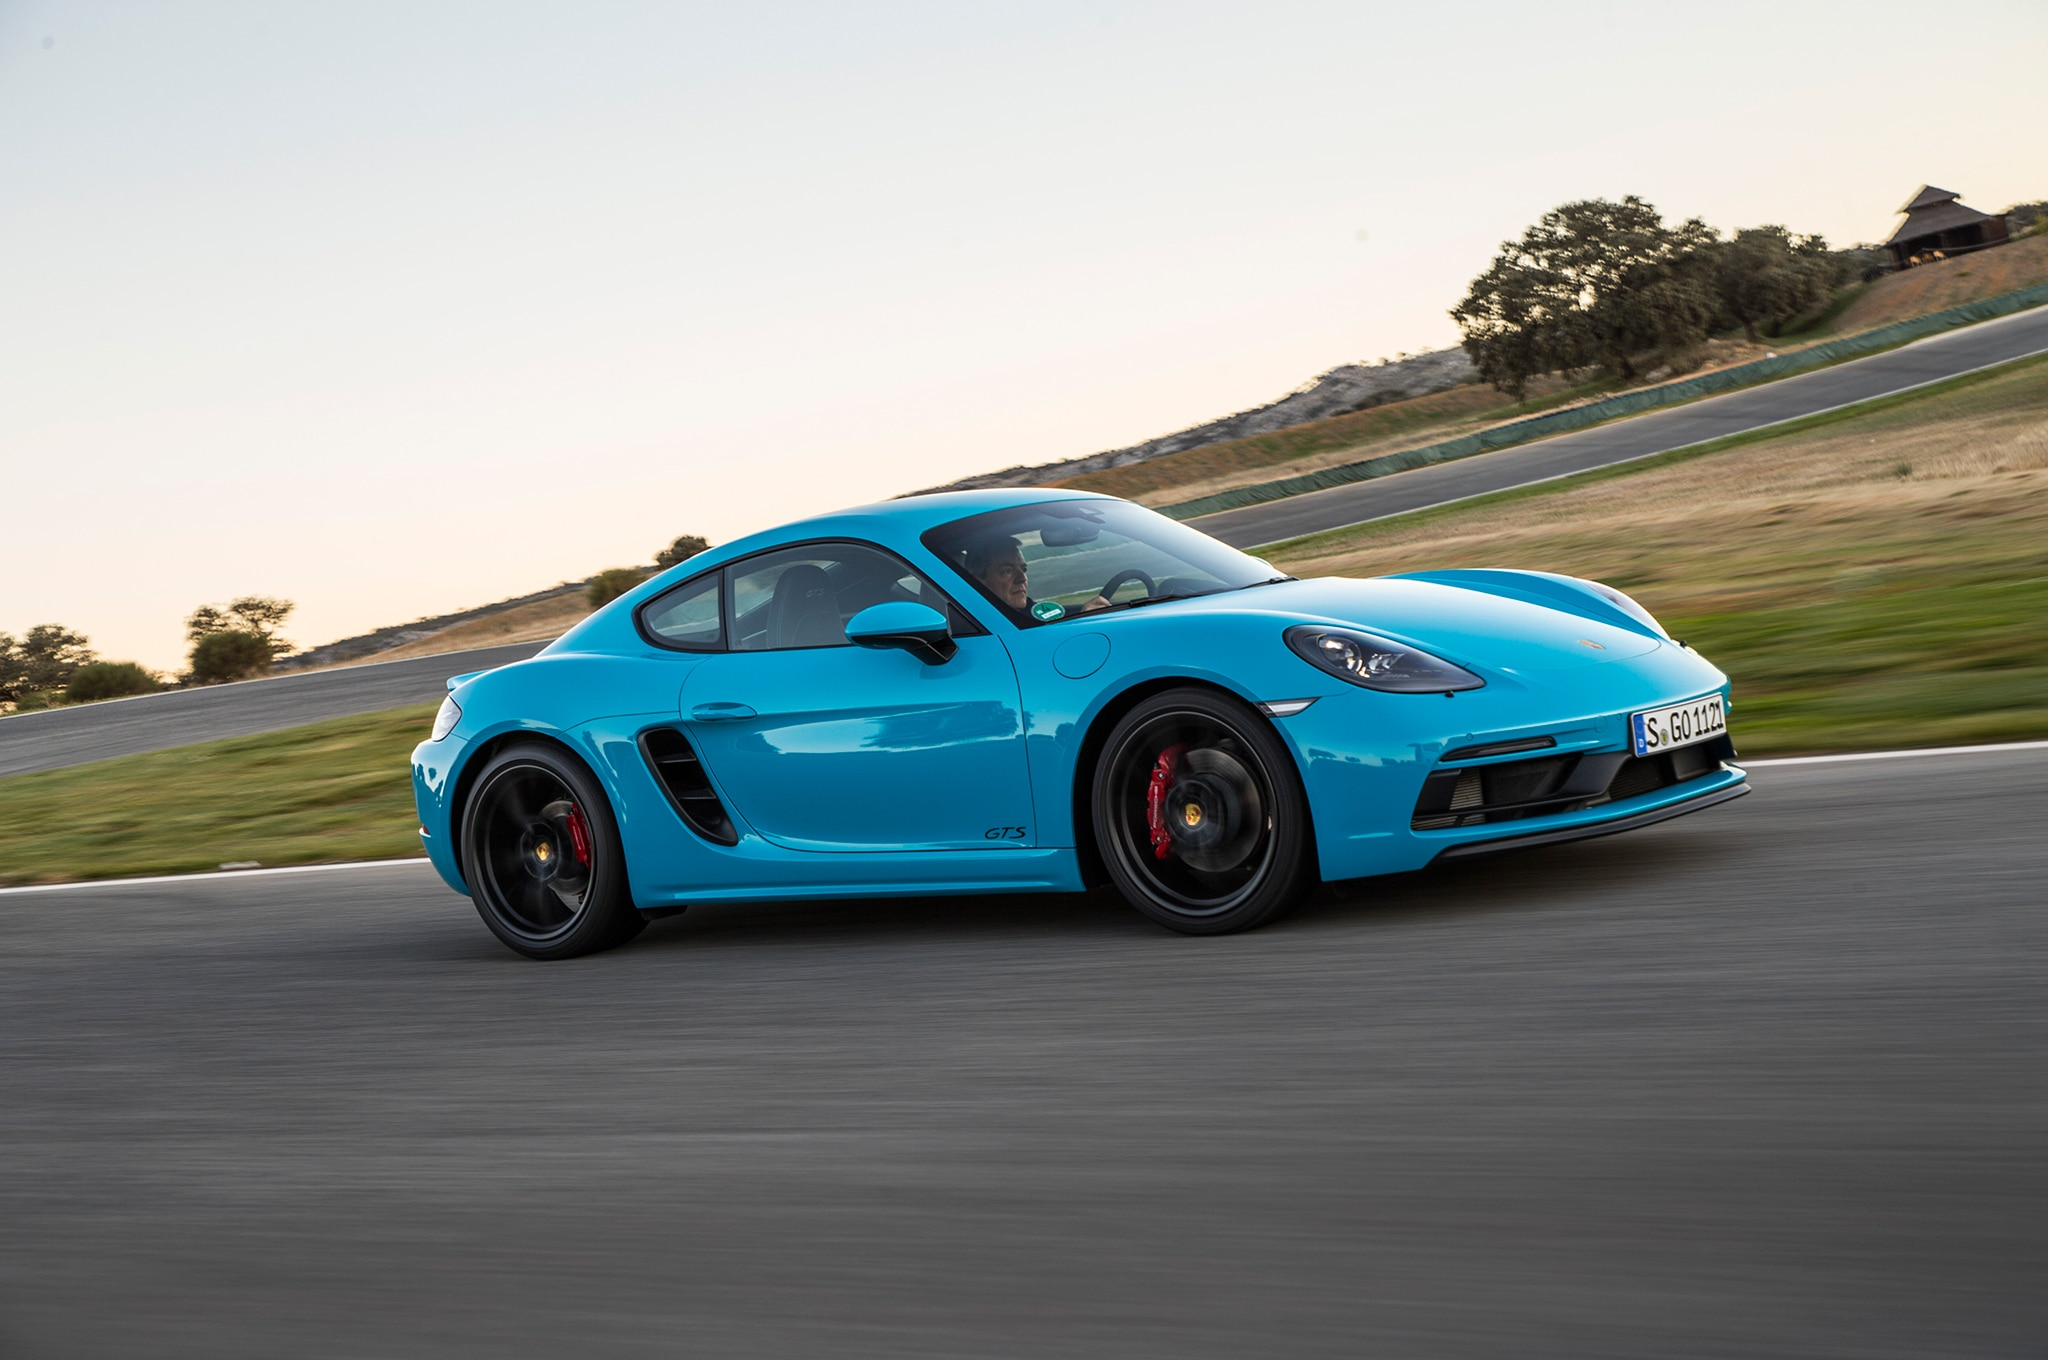 Electric Porsche Boxster And Cayman Variants Could Arrive In 2022